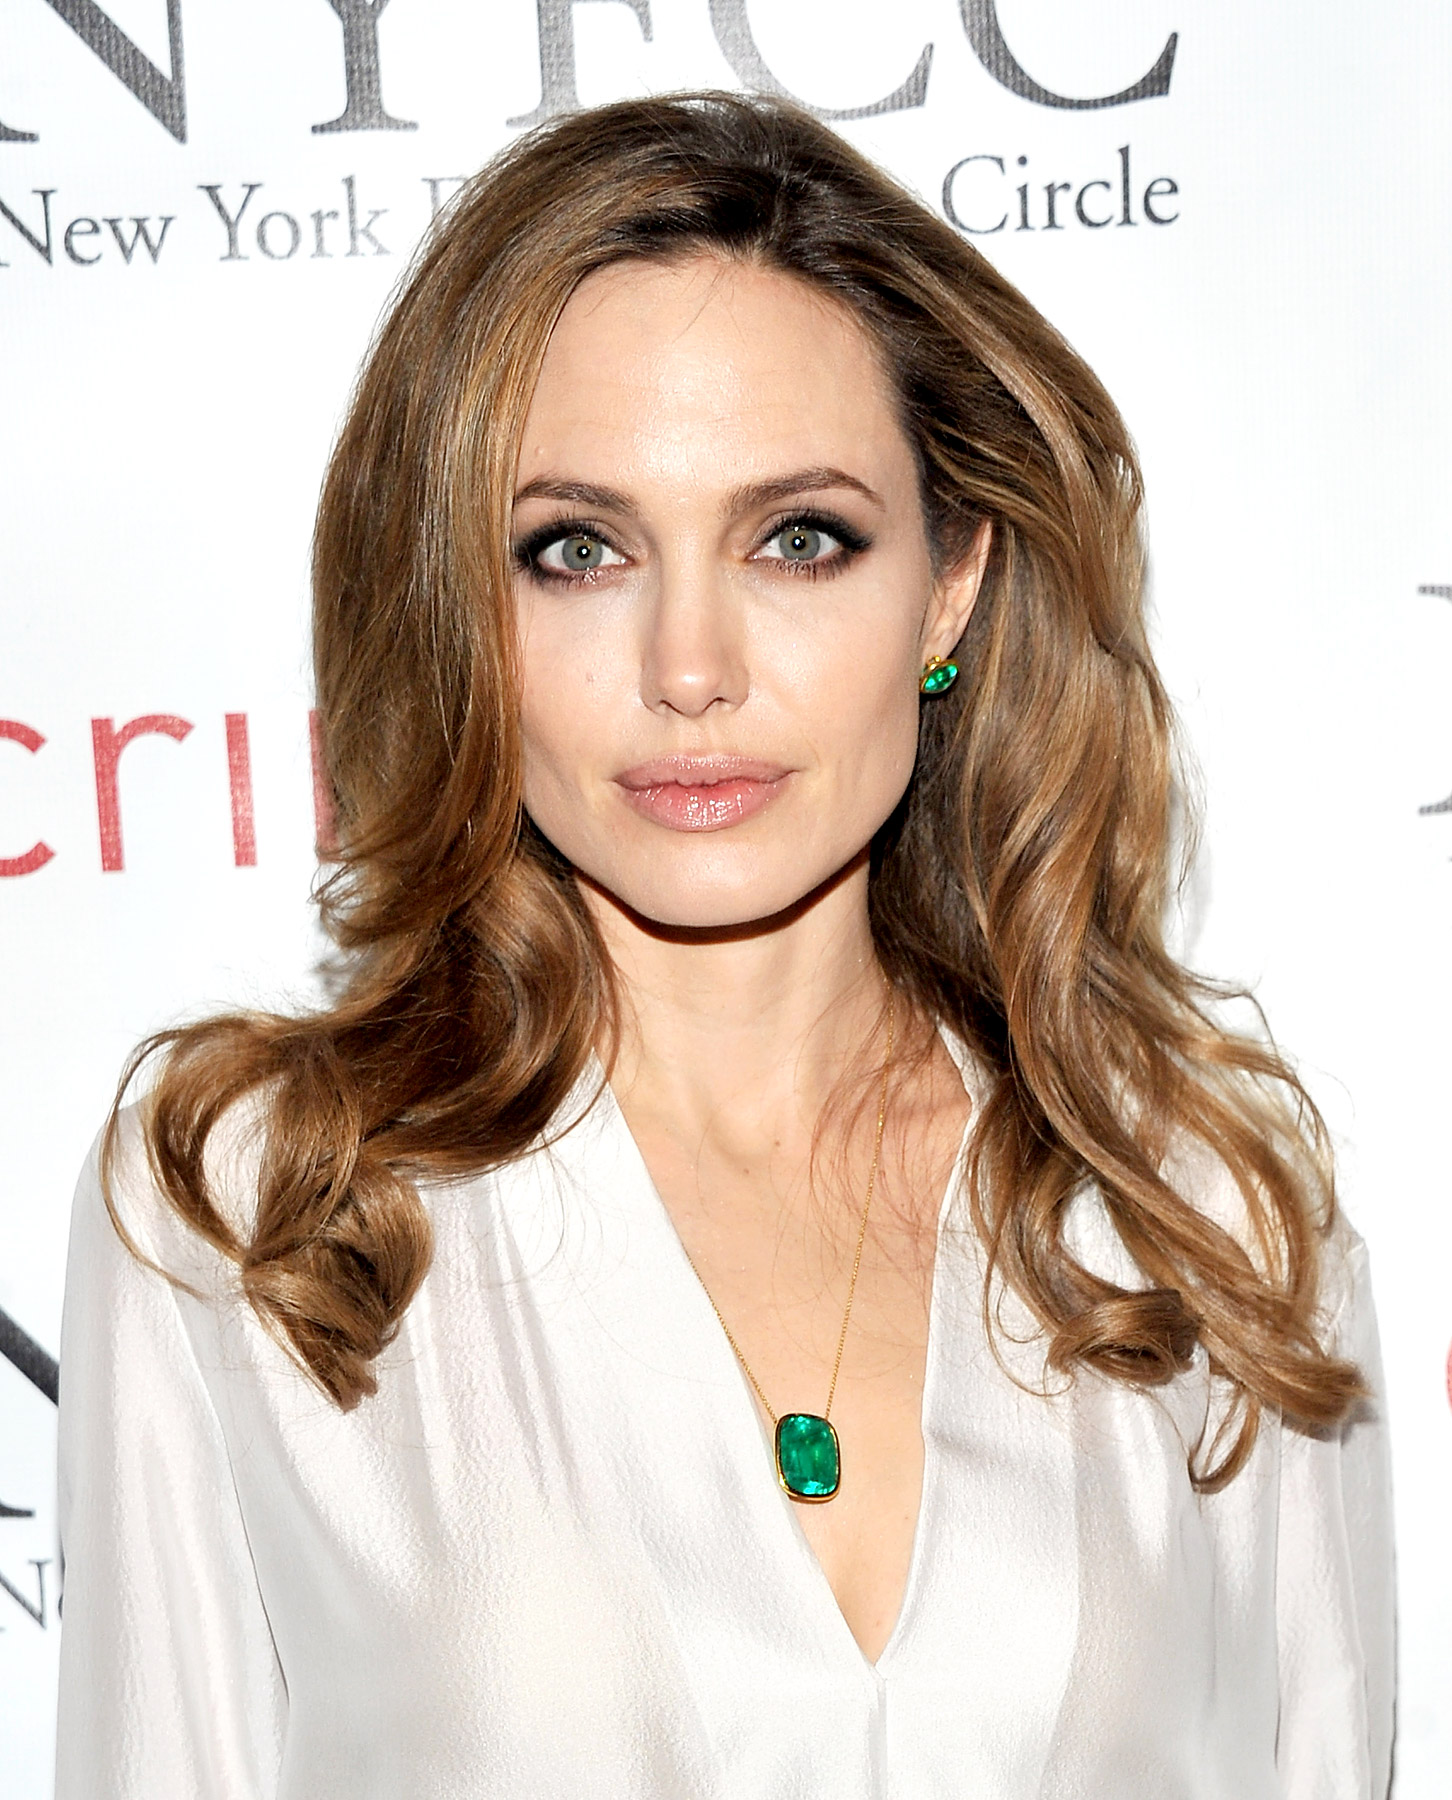 These days she's known for her humanitarian work and career as a seasoned actress, but few can forget her crazy vile-of-blood-around-her-neck days. Jolie has admitted to past drug use and in a November 2011 interview with 60 Minutes she reflected on that time in her life.